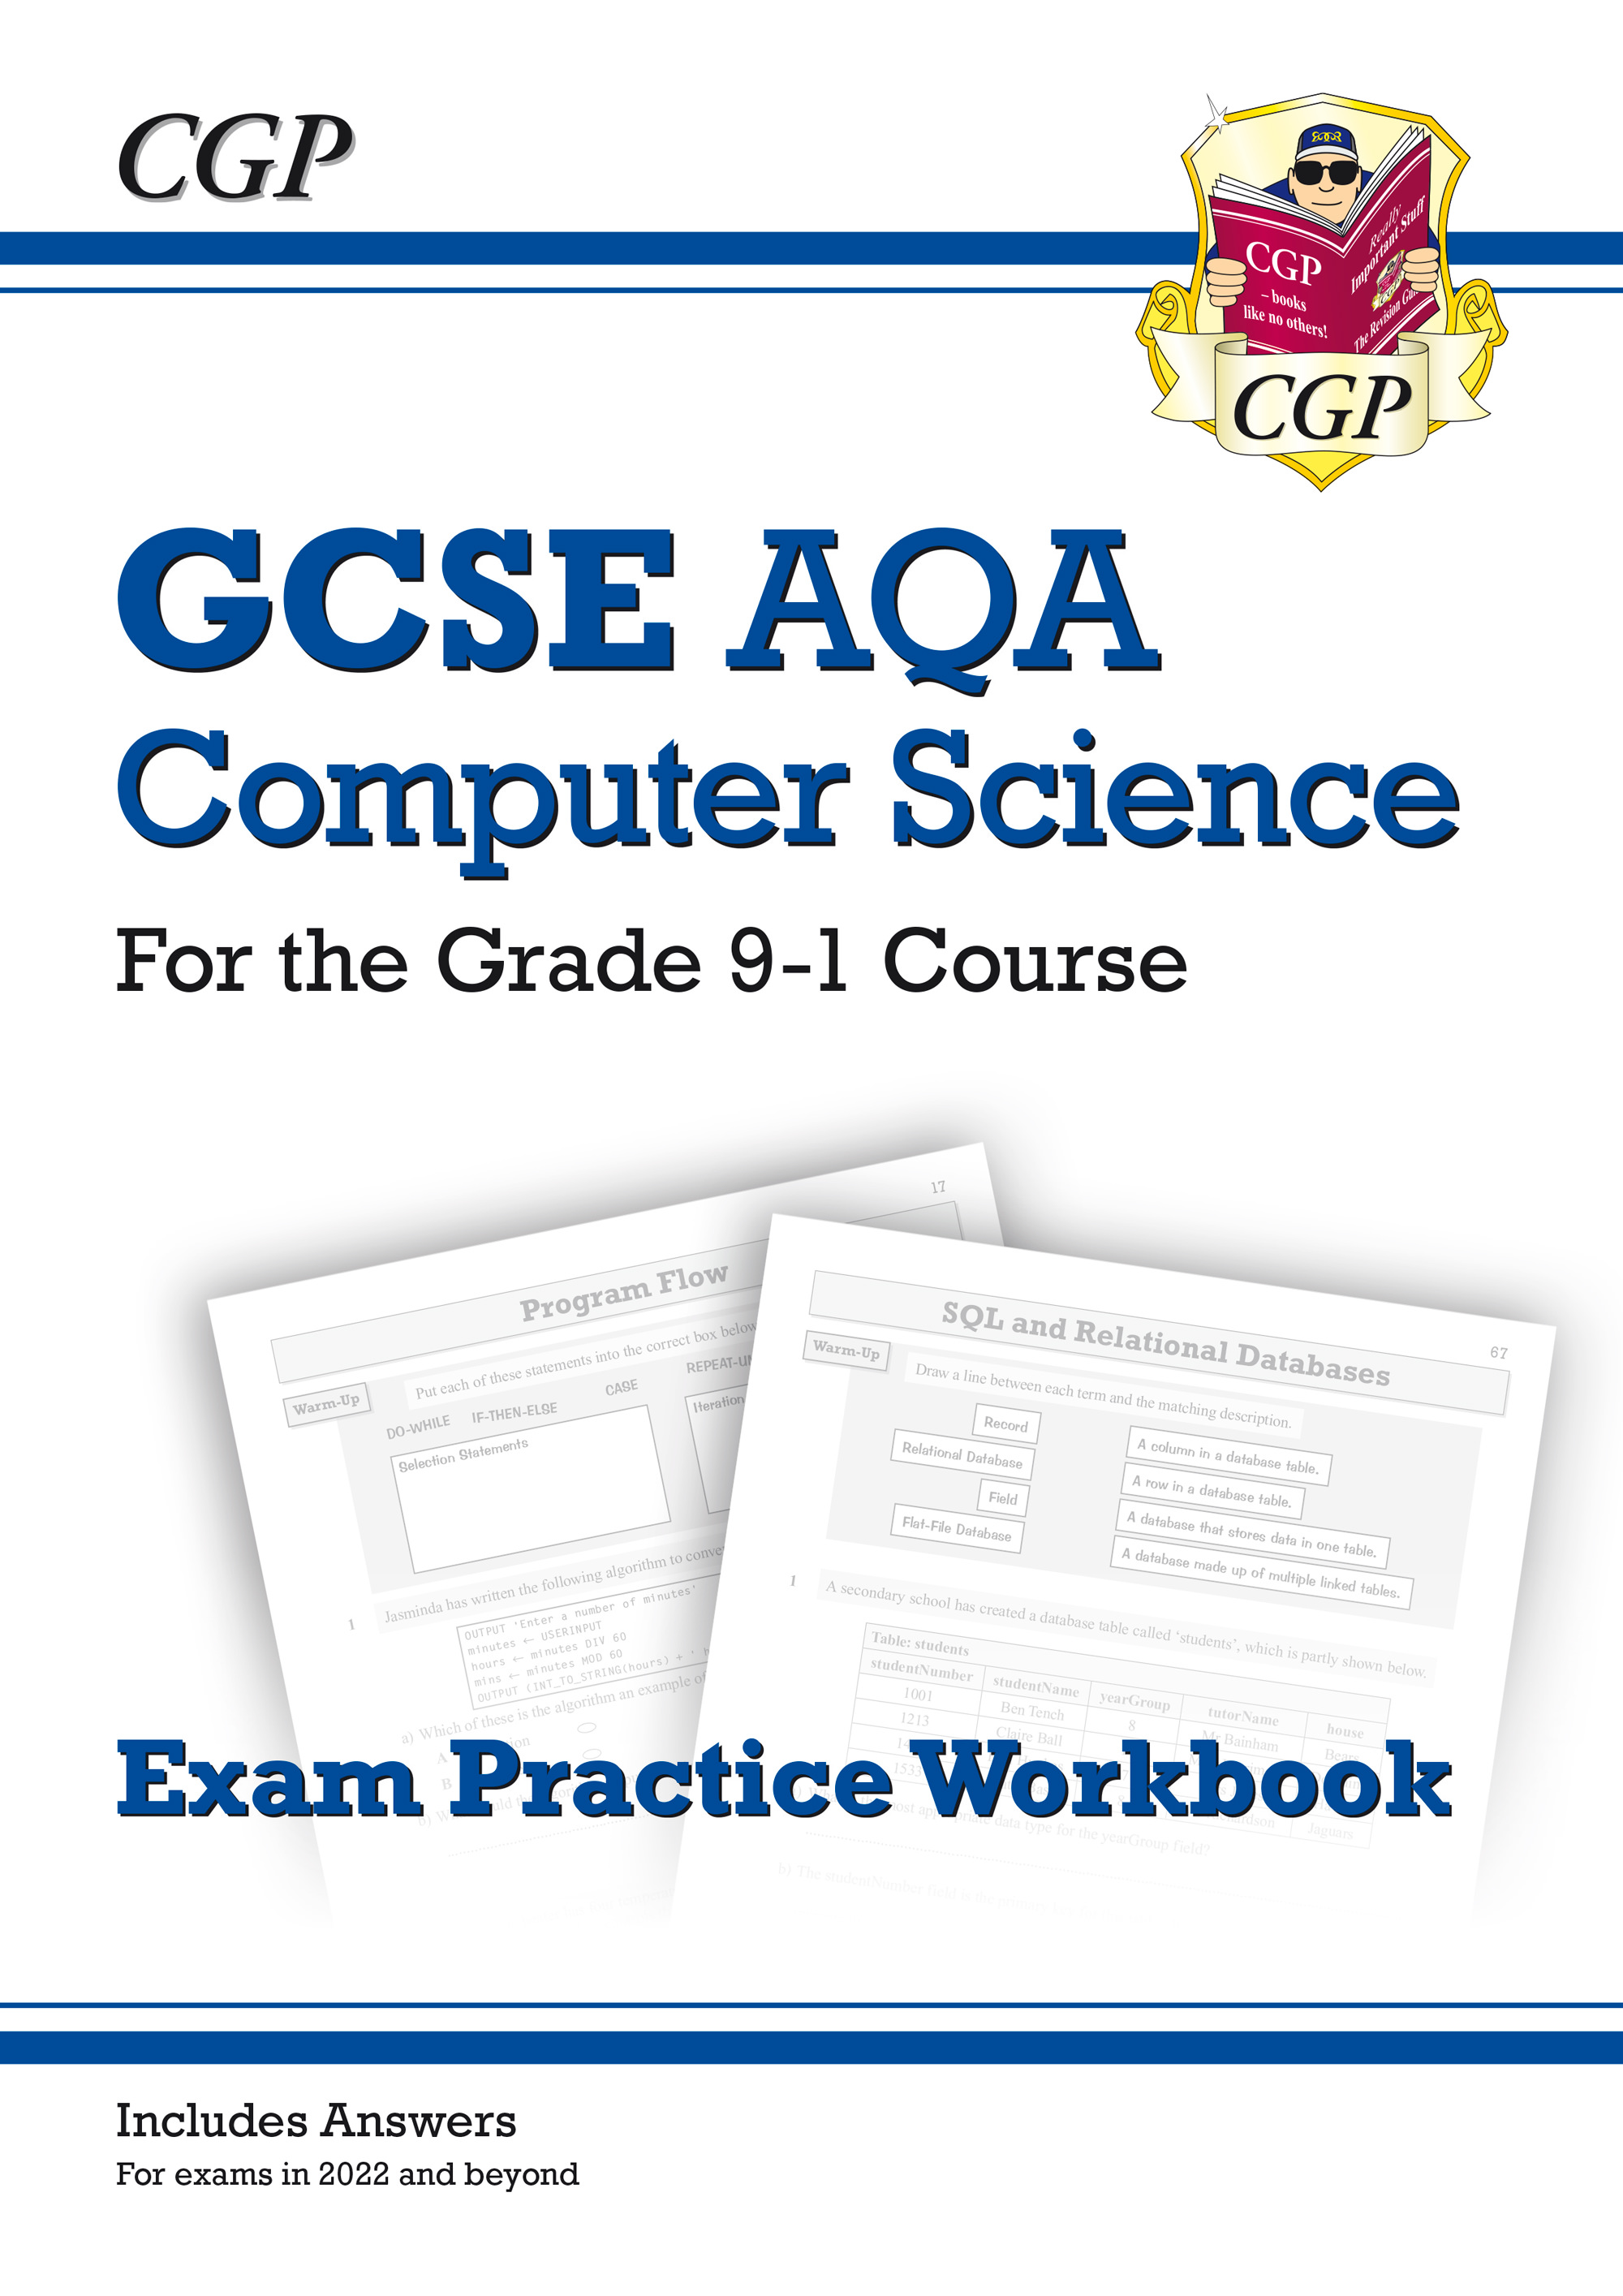 COAQ42 - New GCSE Computer Science AQA Exam Practice Workbook - for exams in 2022 and beyond